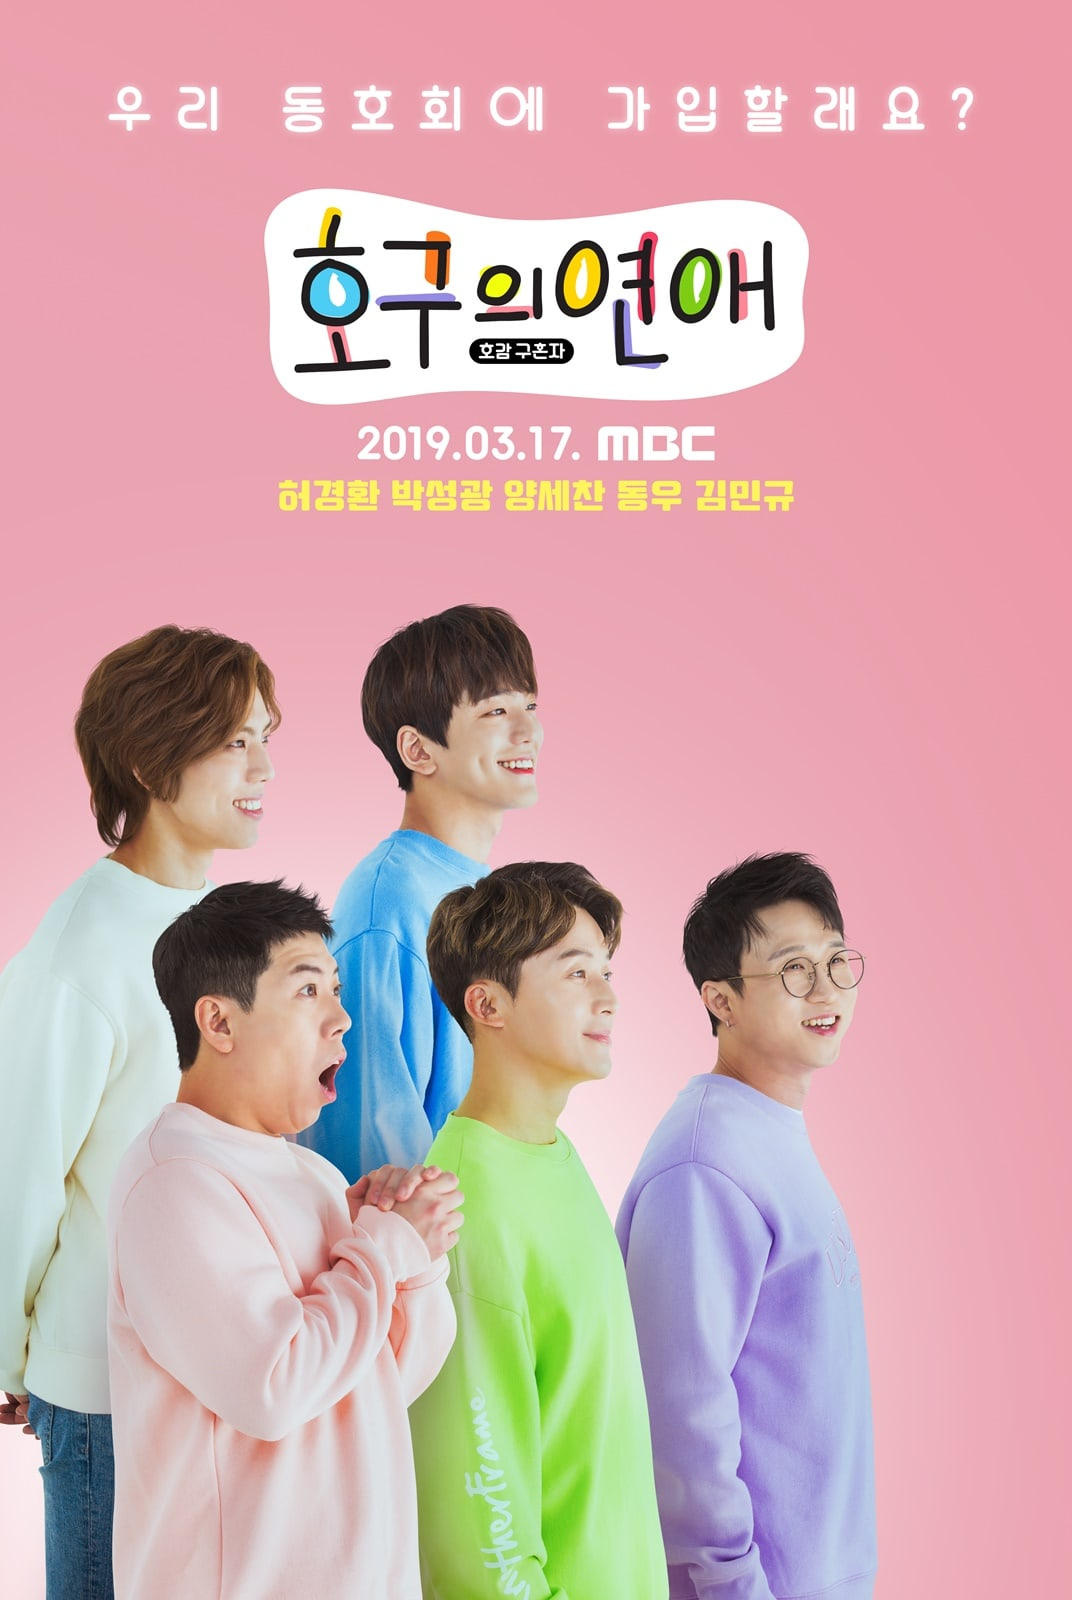 Watch: MBC Drops Posters And Making Video Of New Variety